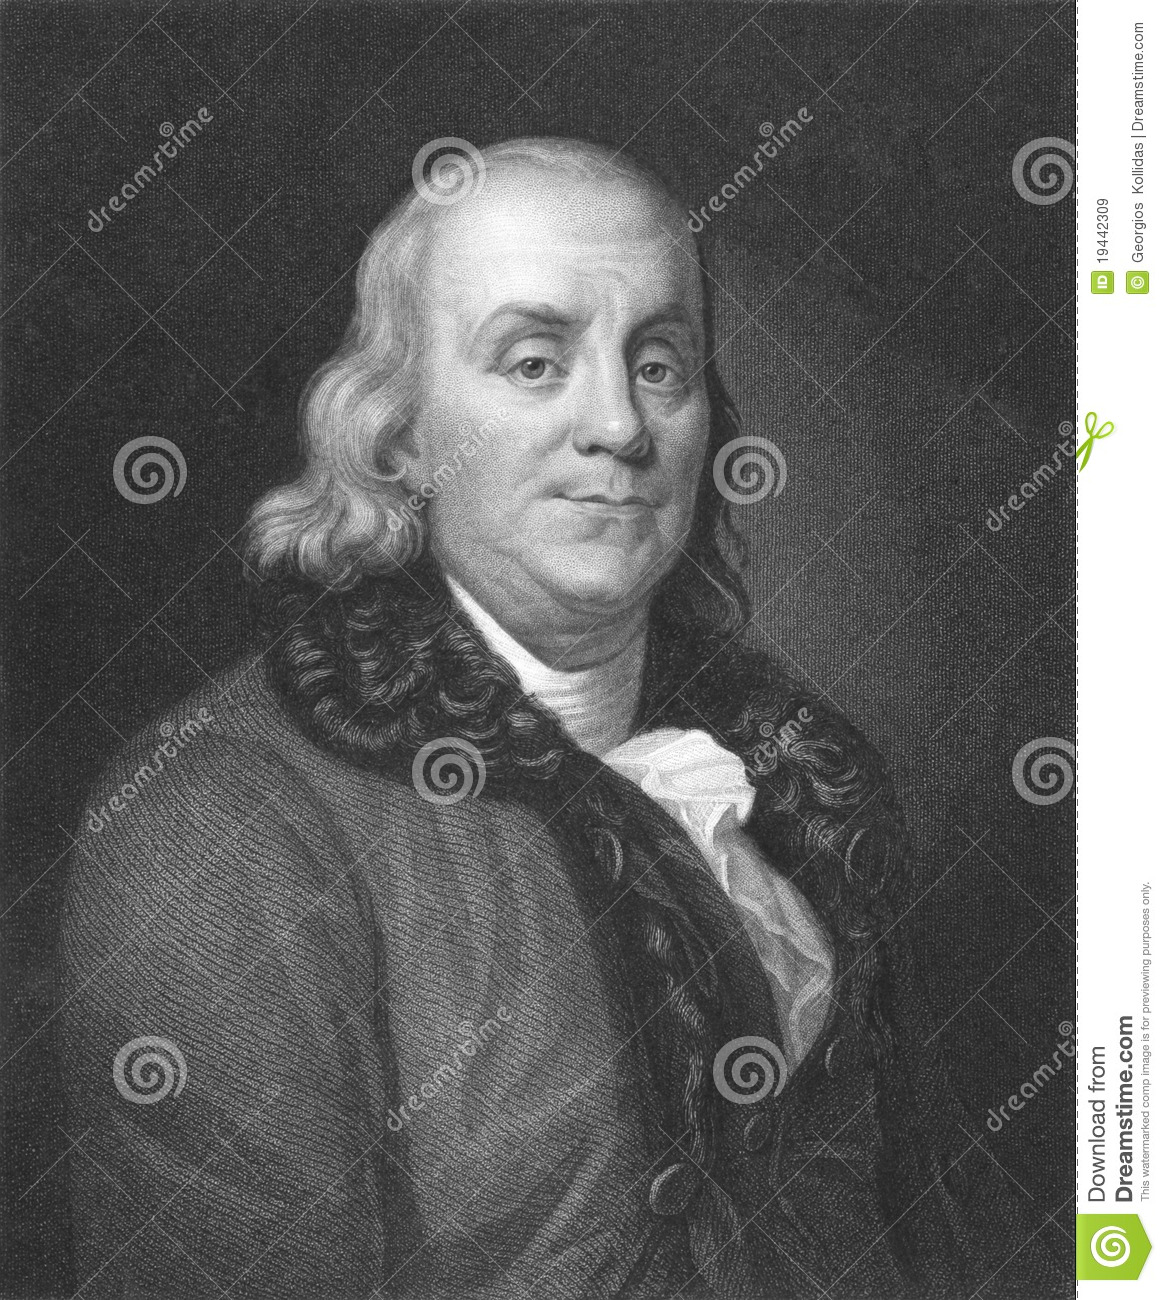 Beniamin Franklin